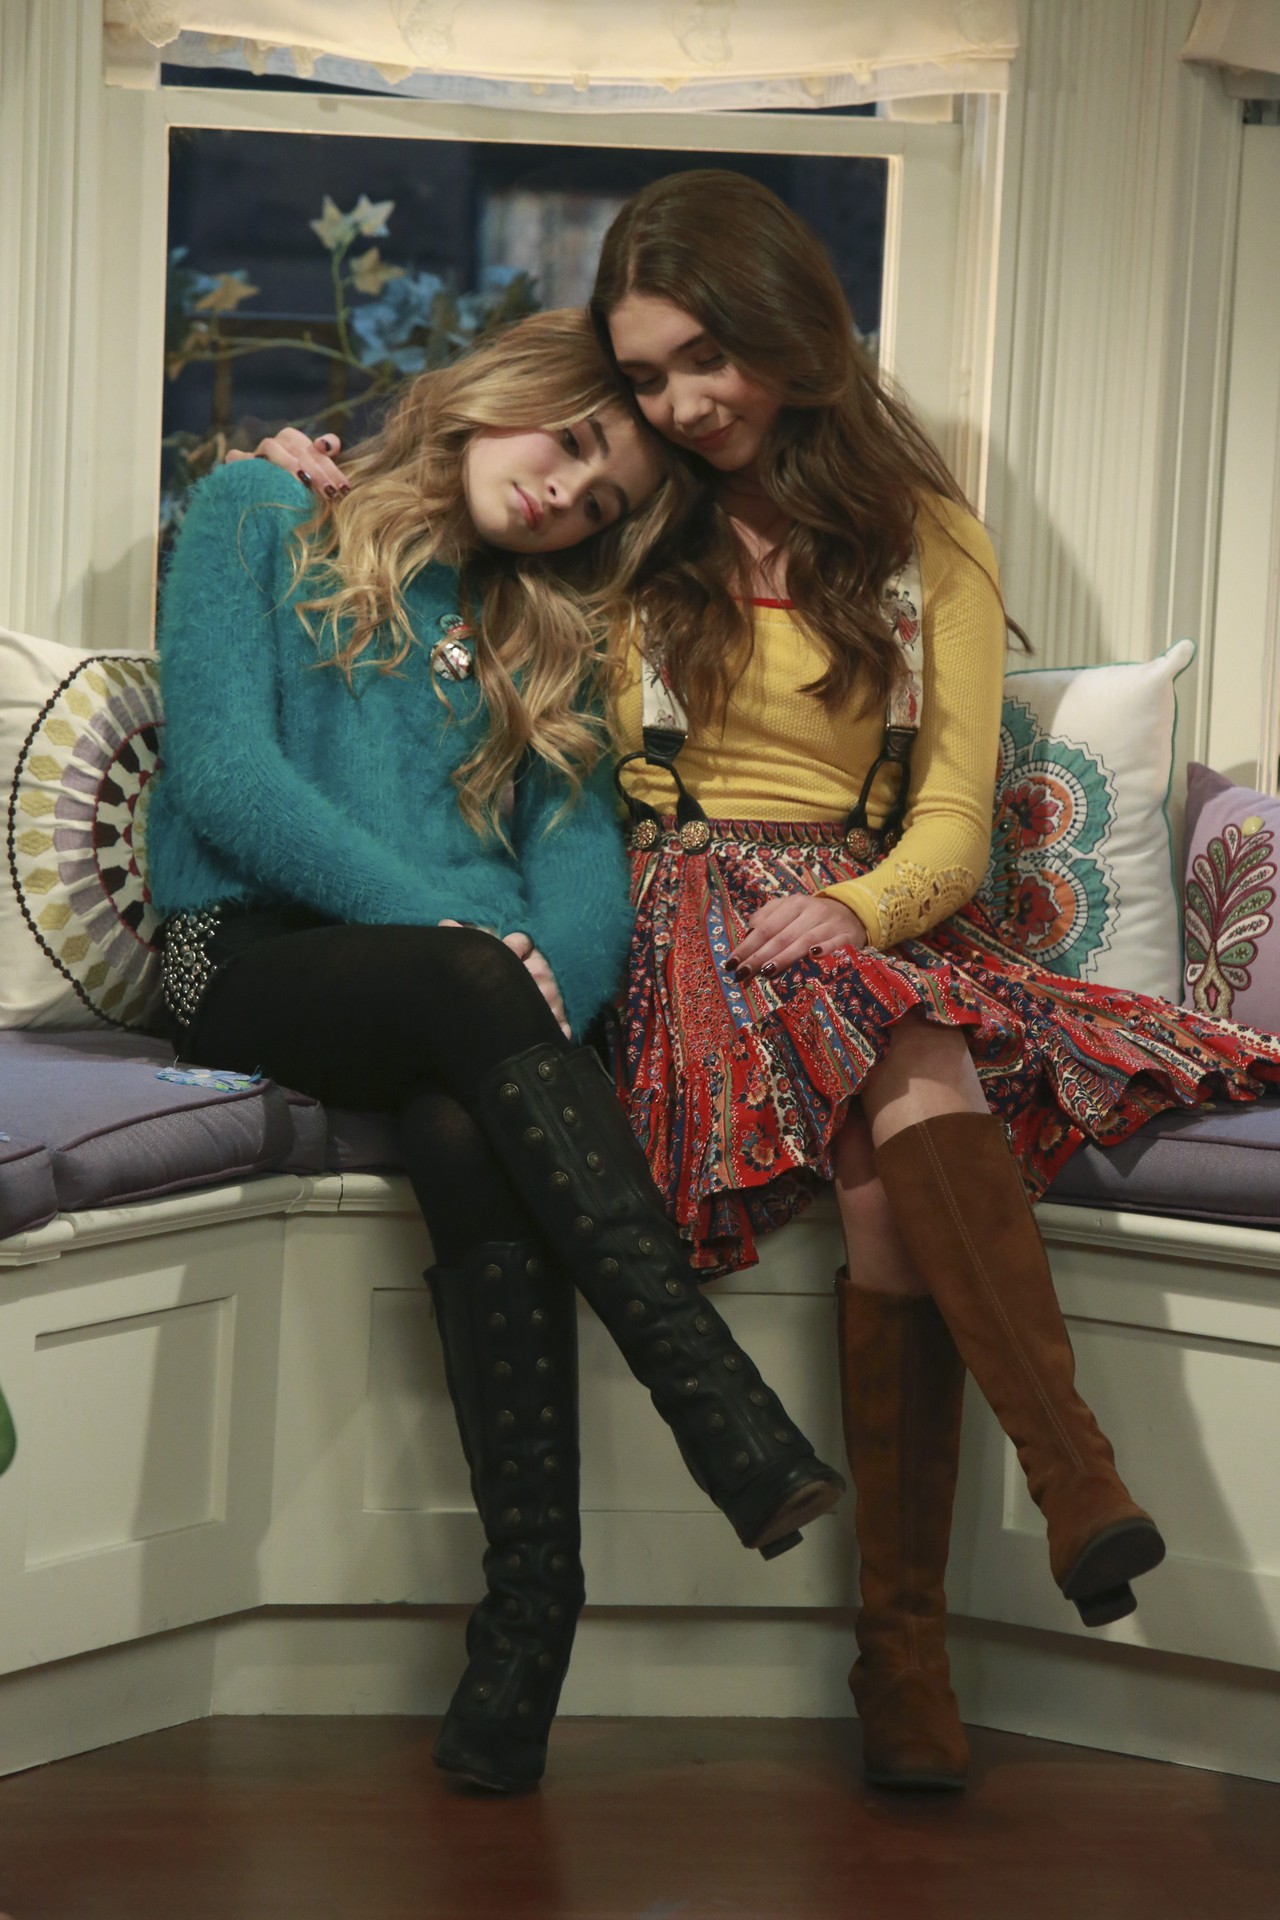 riley from girl meets world singing Via youtube capture girl meets world- riley finds out maya likes lucas and brother zones him | girl meets texas - duration: 3:16 scenes 849,286 views.